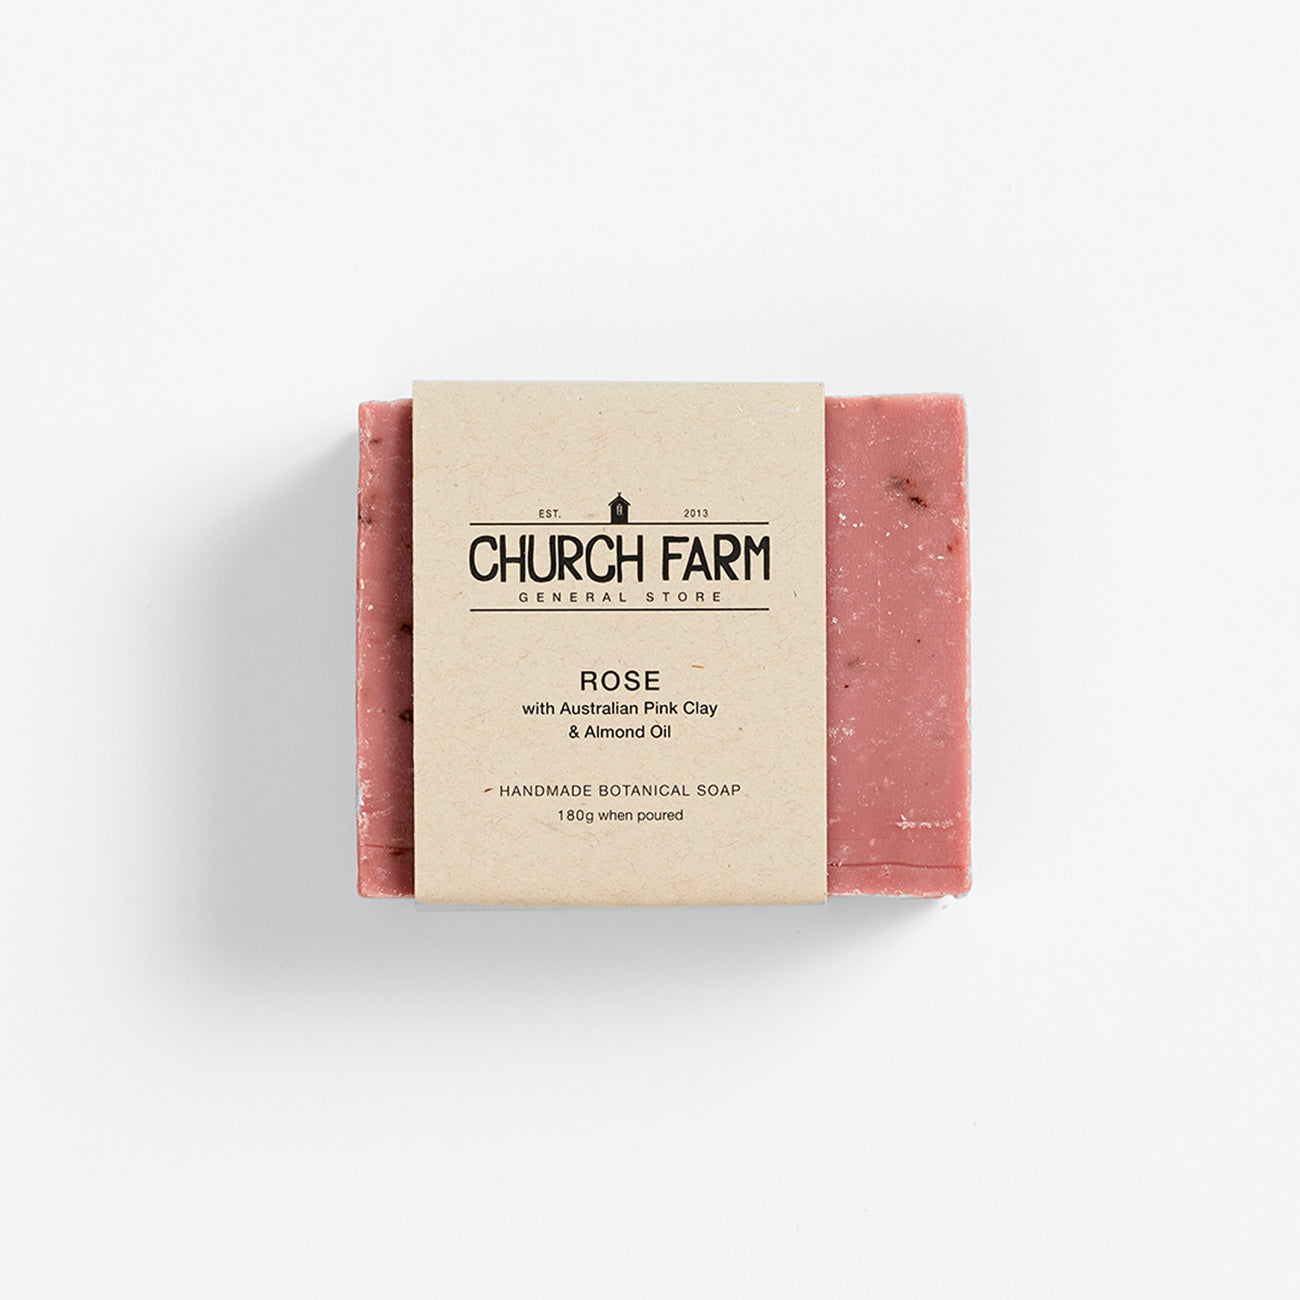 Church Farm Botanical Soap - Rose with Australian Pink Clay & Almond Oil